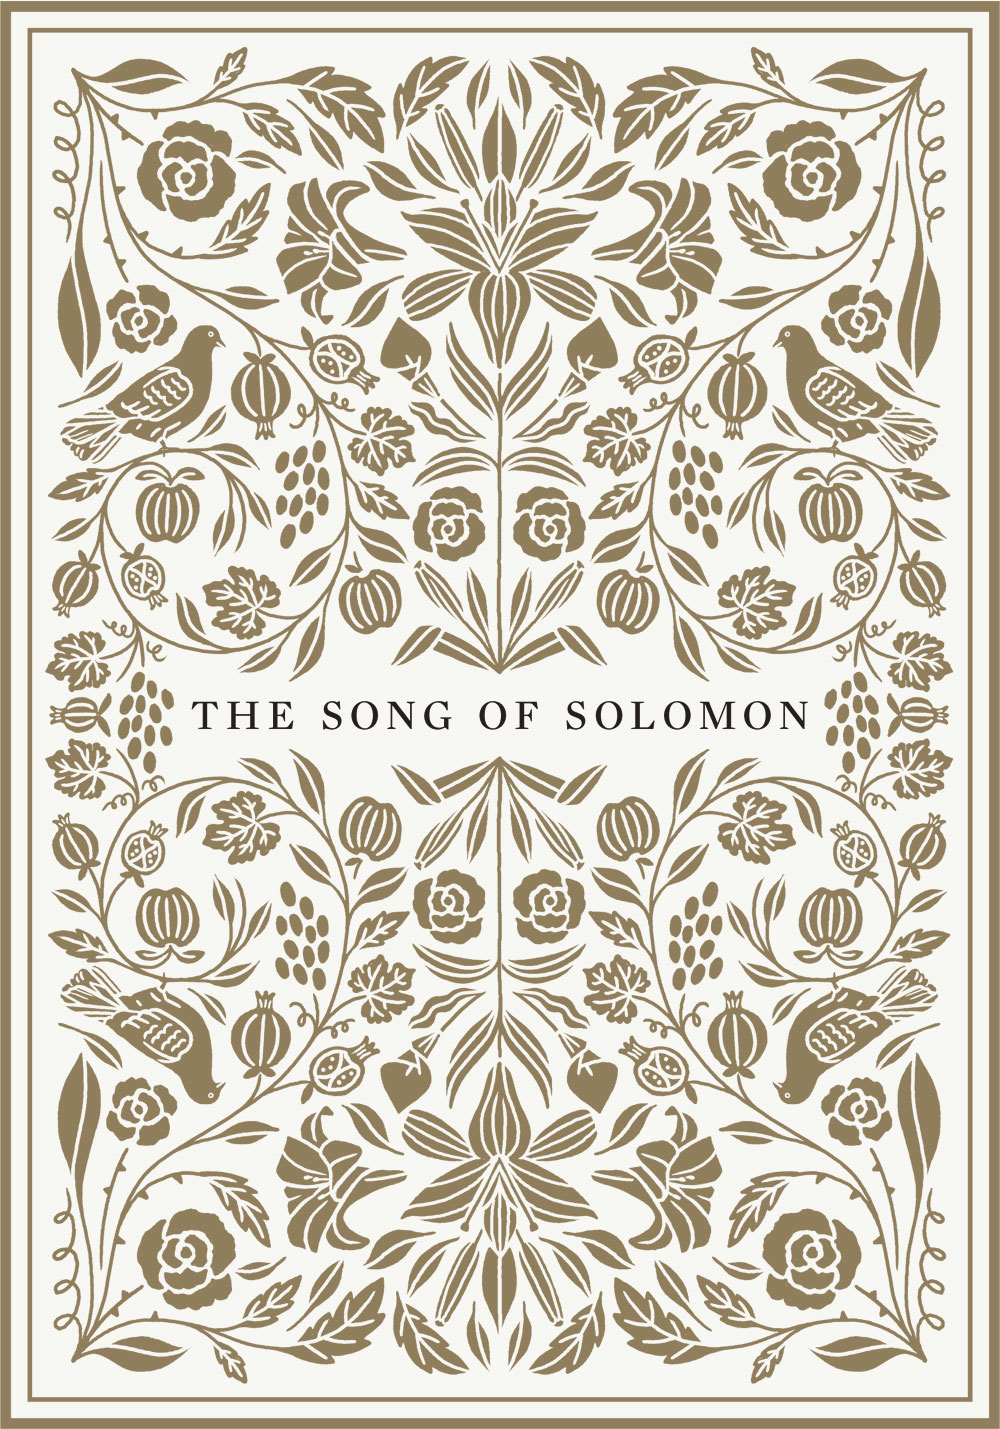 22-Song-of-Solomon.jpg